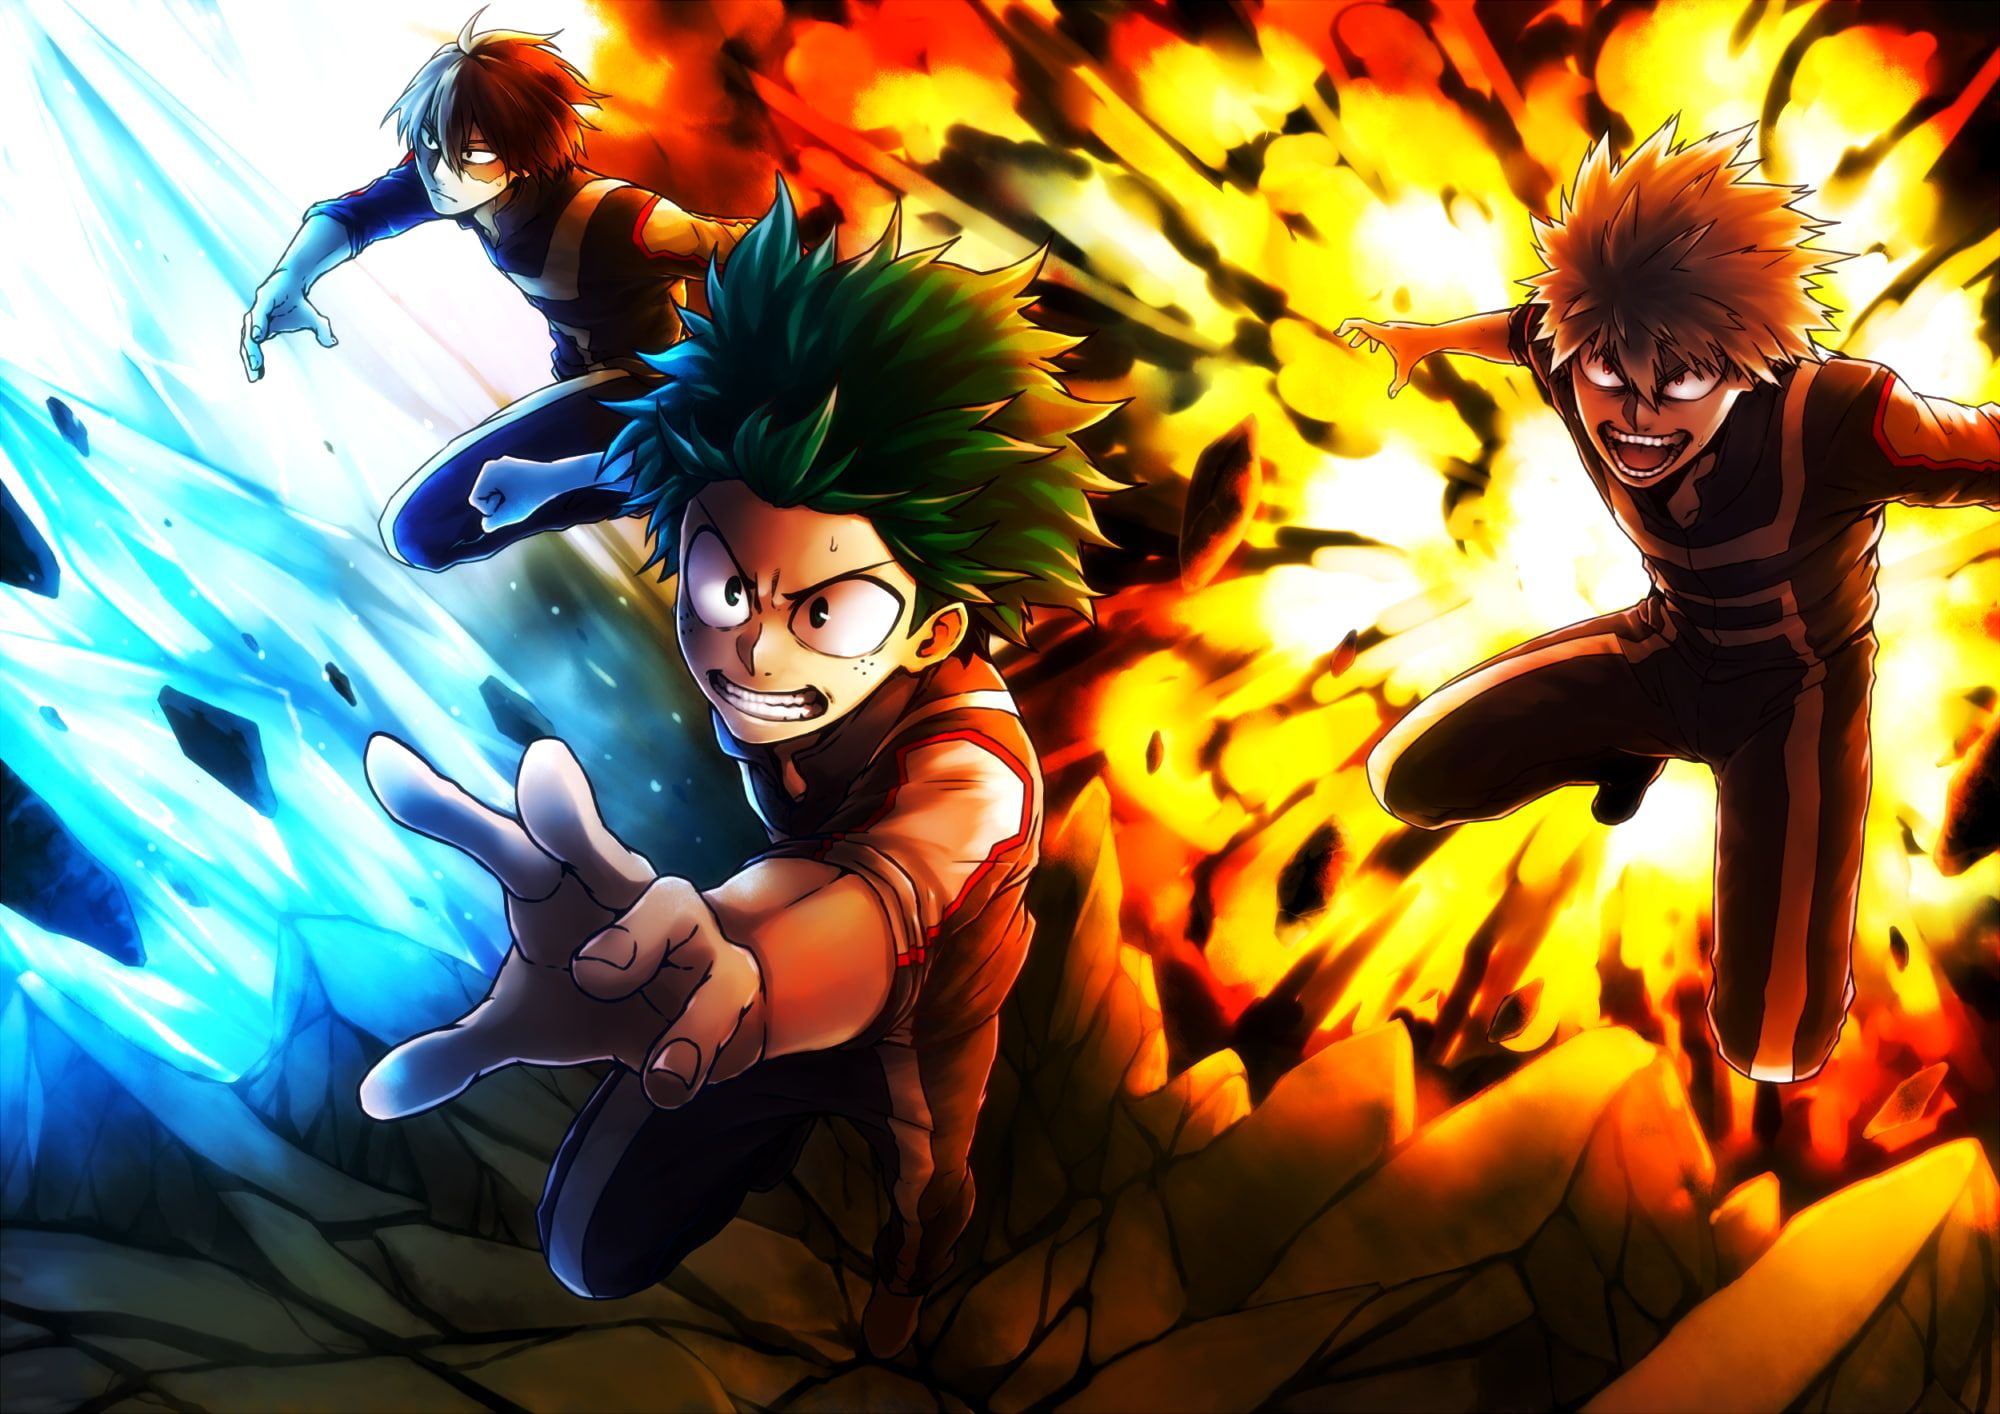 Boku No Hero Academia 1080p Wallpaper Hdwallpaper Desktop Best Action Anime My Hero My Hero Academia